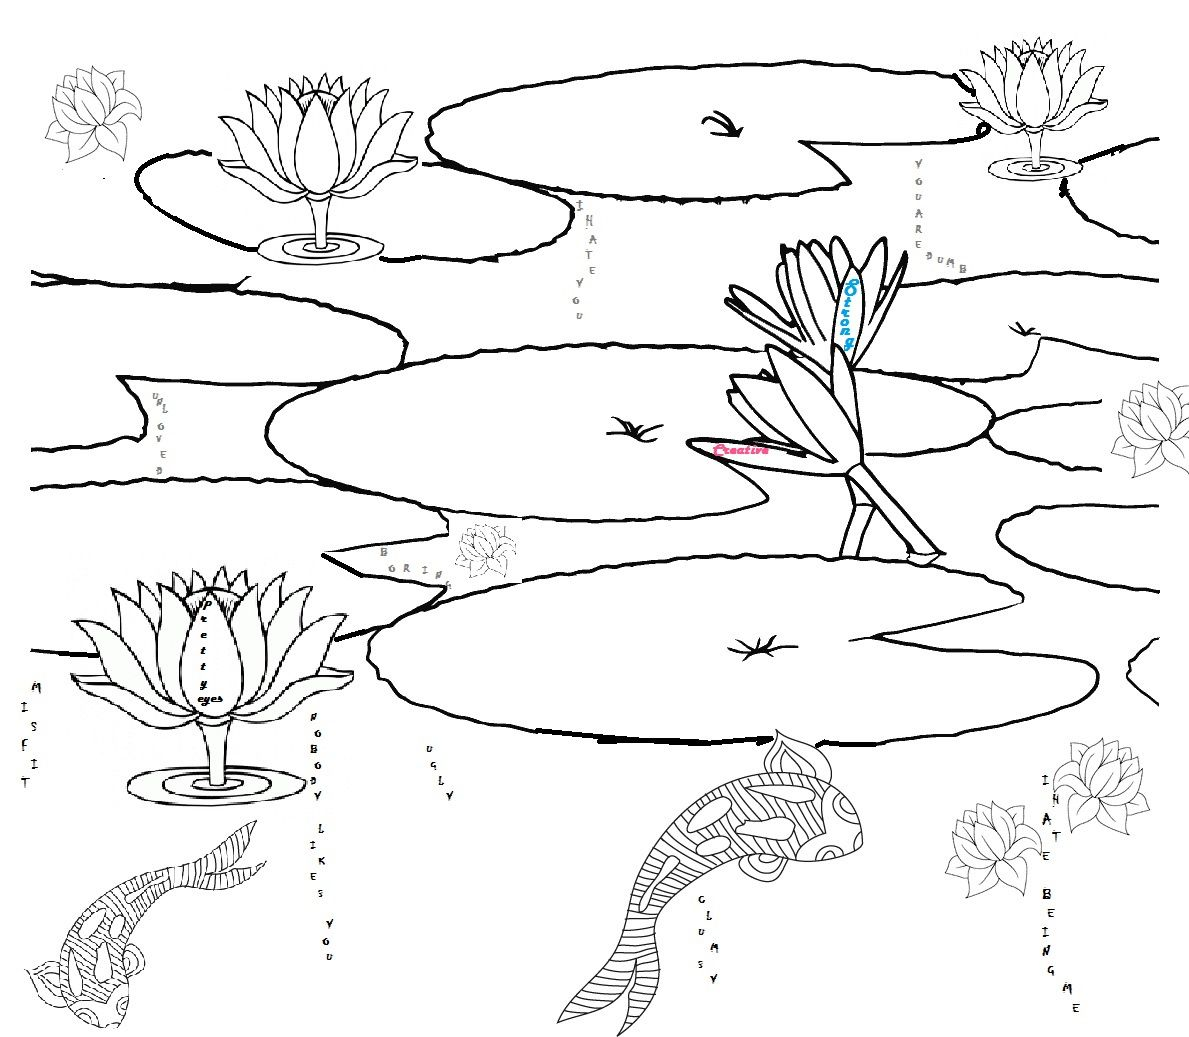 pond habitat coloring pages - photo#2